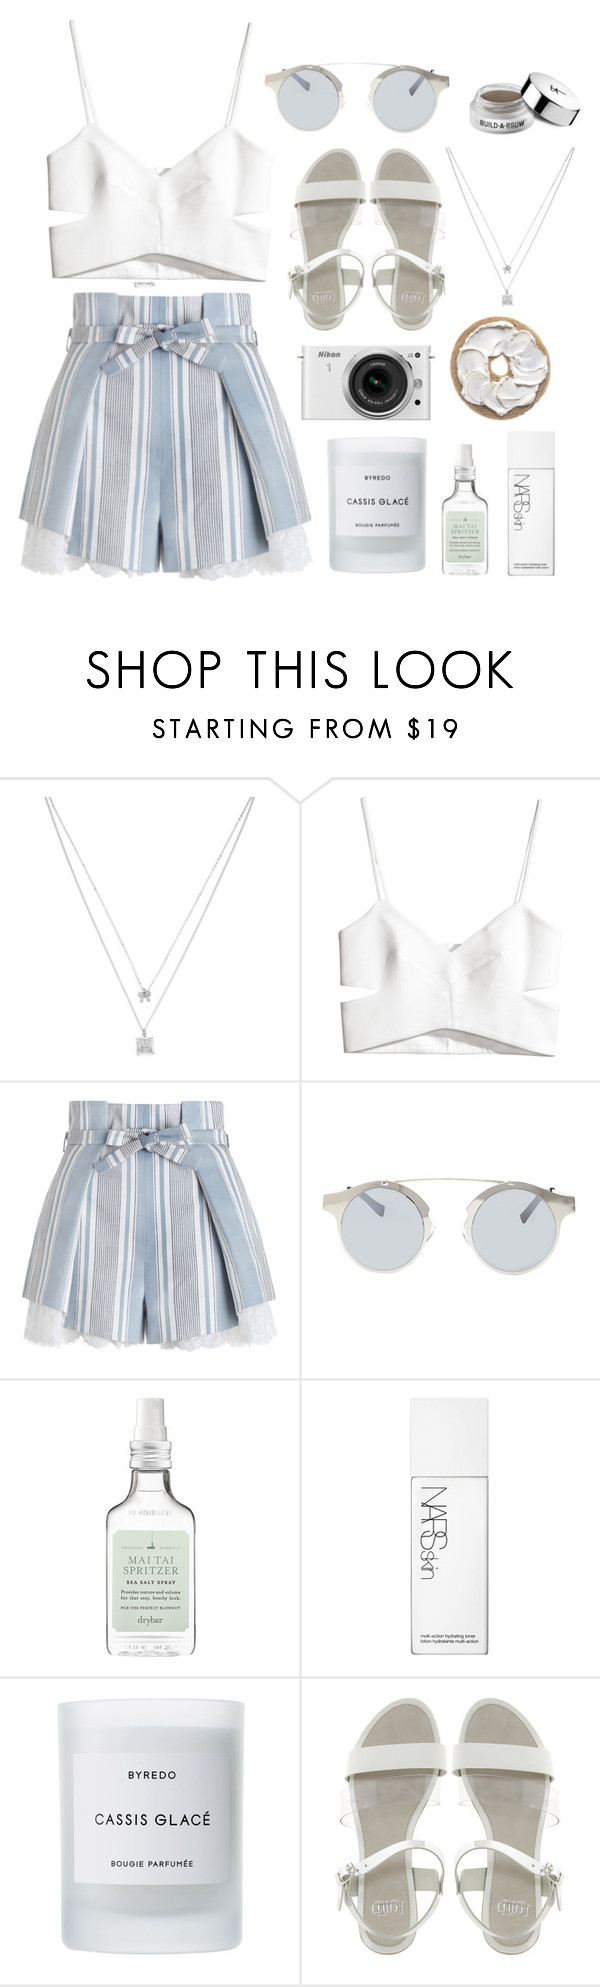 """""""Vanity"""" by forevermiya ❤ liked on Polyvore featuring Betsey Johnson, H&M, Zimmermann, Forever 21, Drybar, Nikon, NARS Cosmetics, Byredo, Faith and It Cosmetics"""